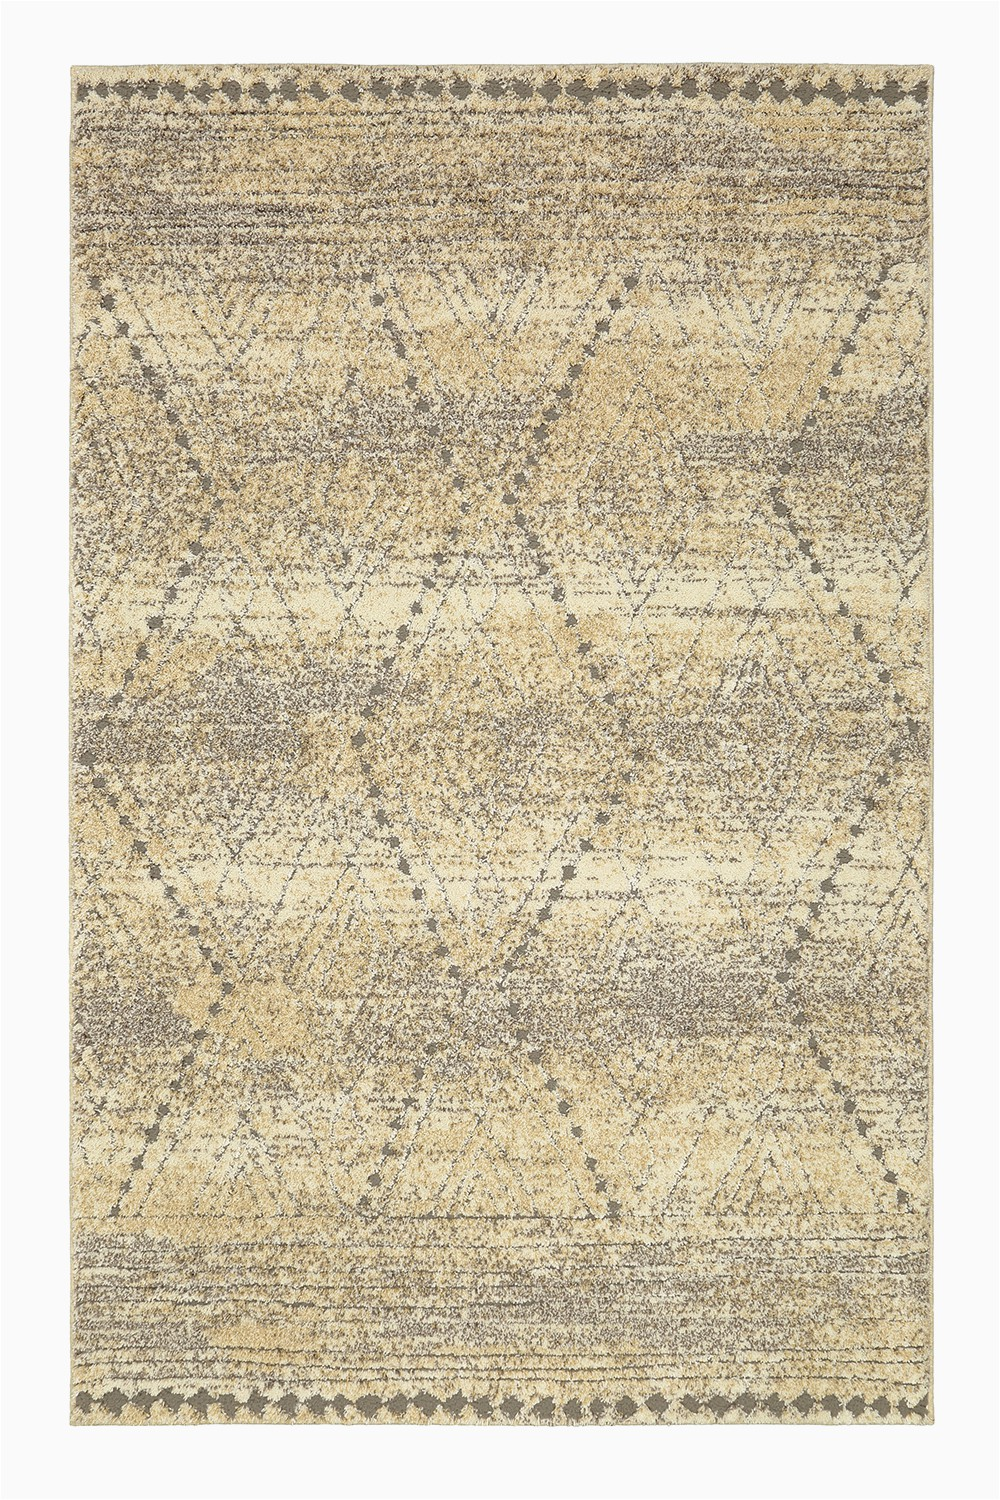 Mohawk area Rugs 8 X 10 Details About Mohawk Nom Vado 8 X 10 area Rug